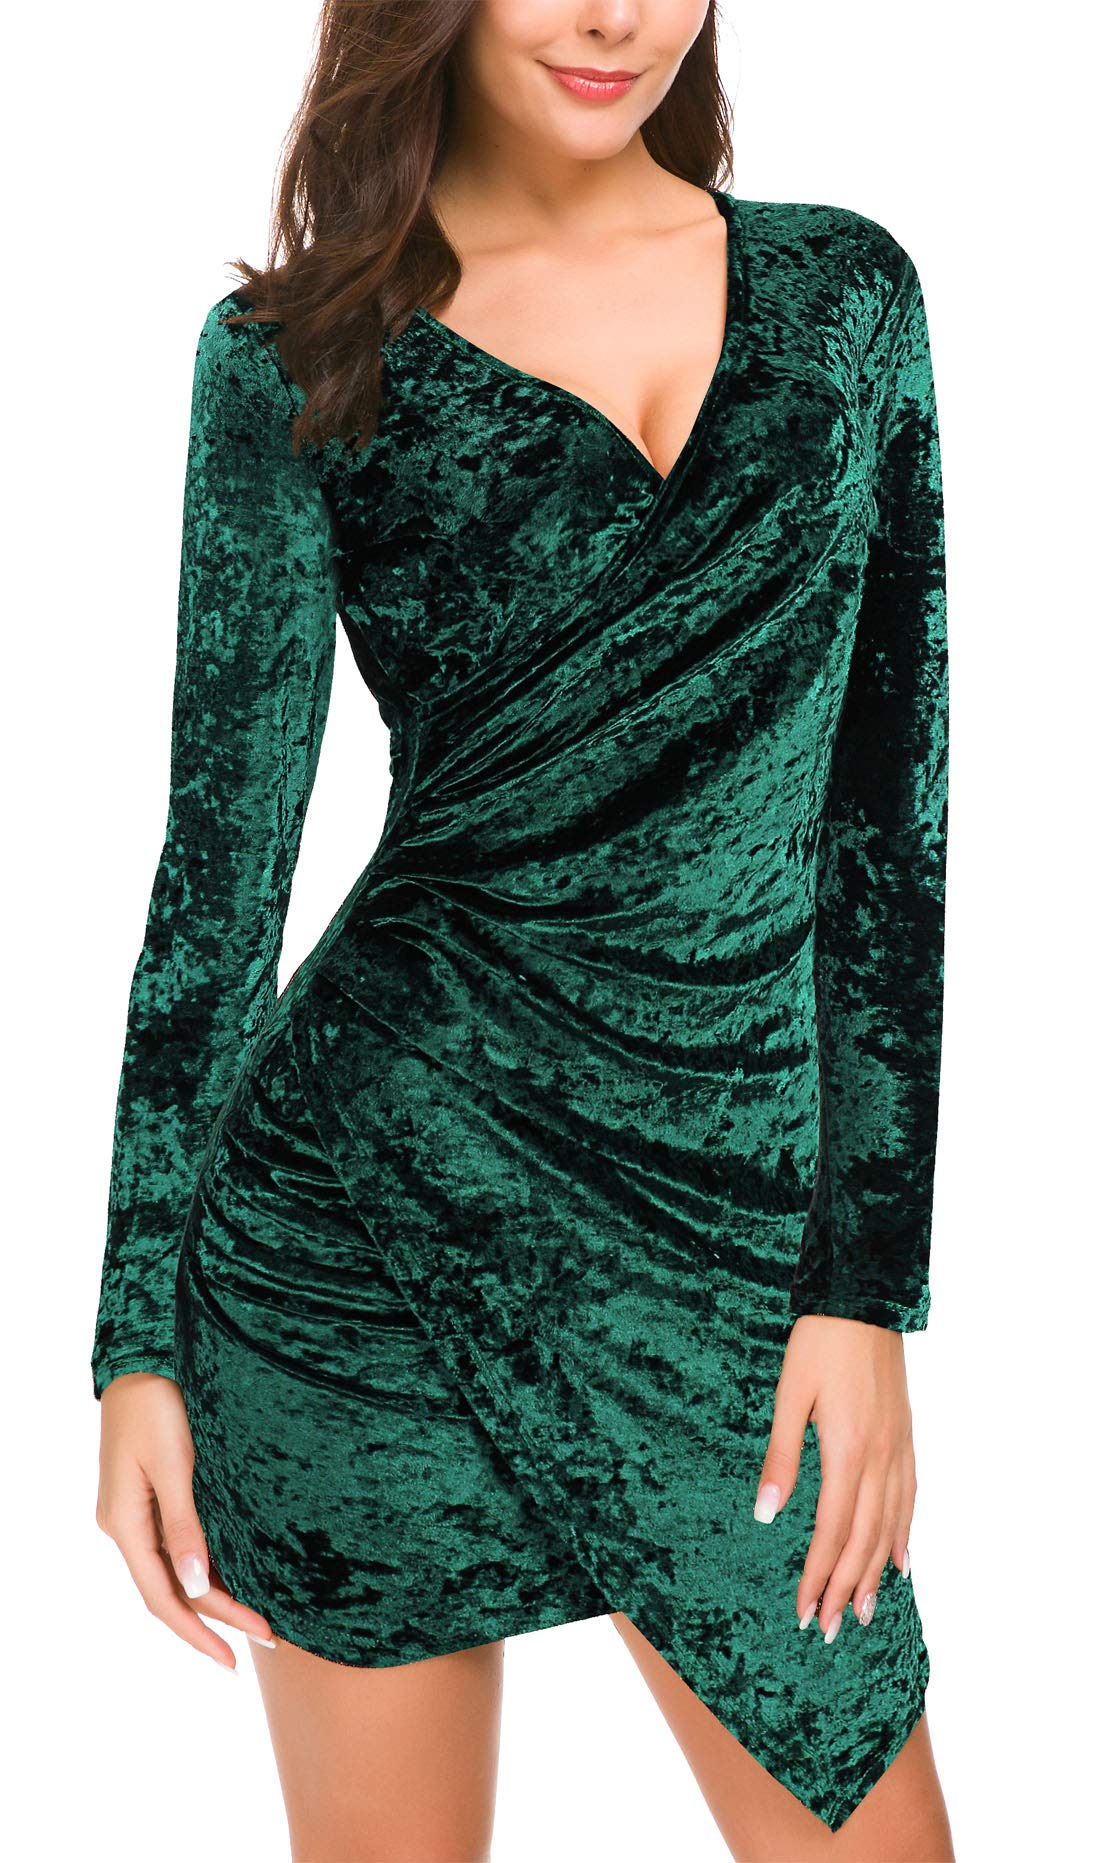 DGMYG Women's Wrap V Neck Velvet Dress Long Sleeve A line Bodycon Slim Cocktail Party Dresses